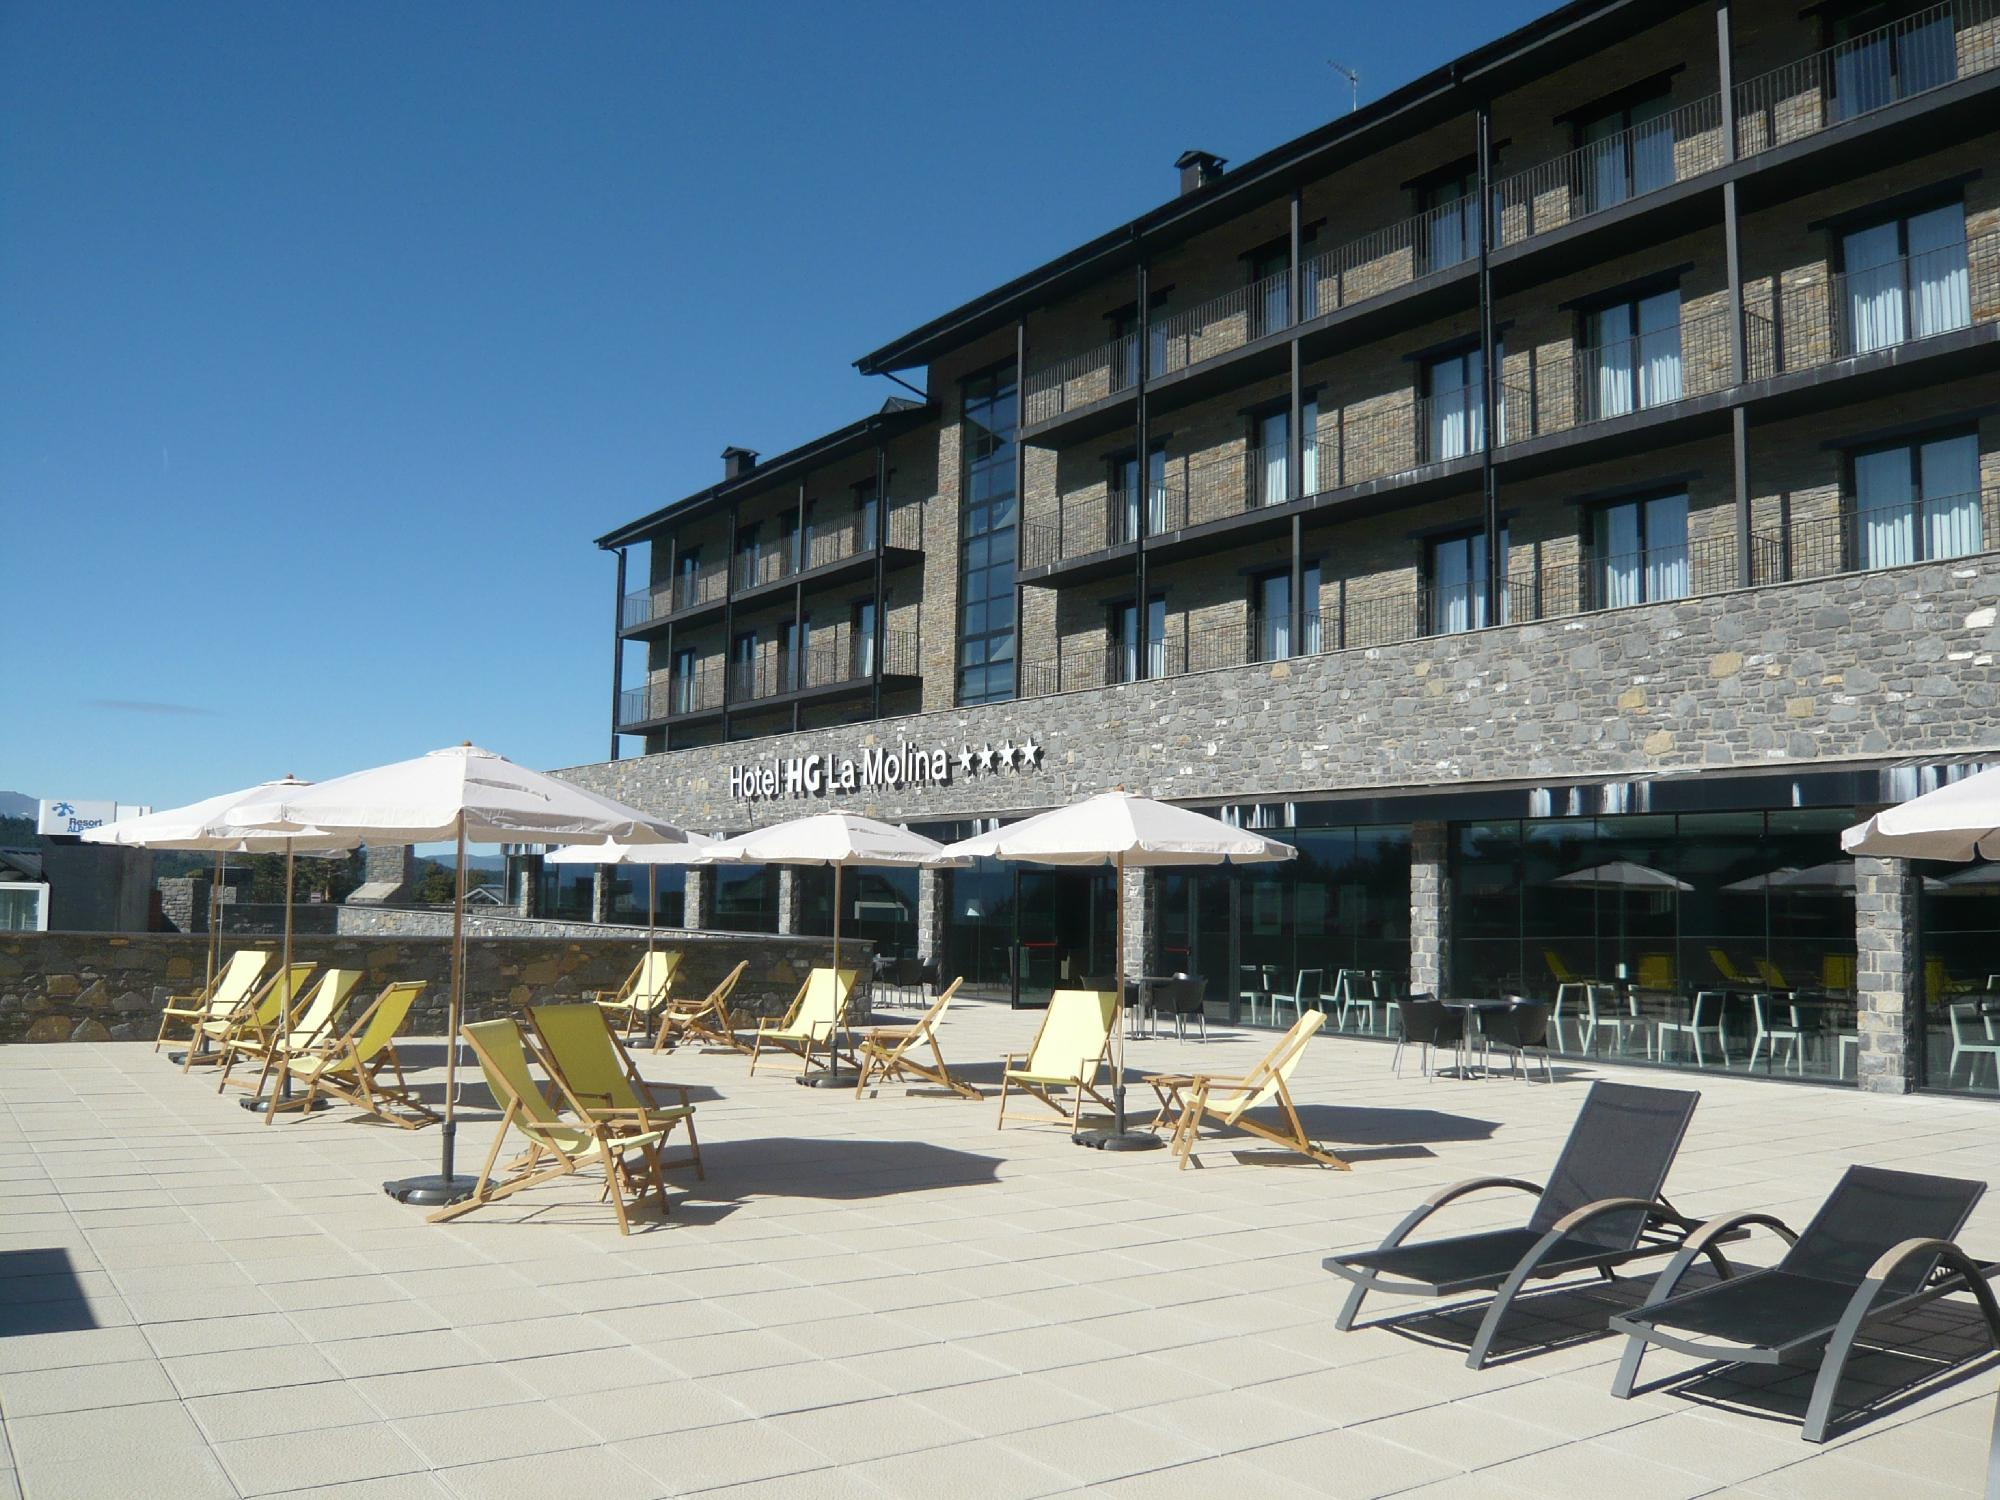 La Molina-Alp Spain  City pictures : llarga s n 17537 la molina alp spain hotel amenities